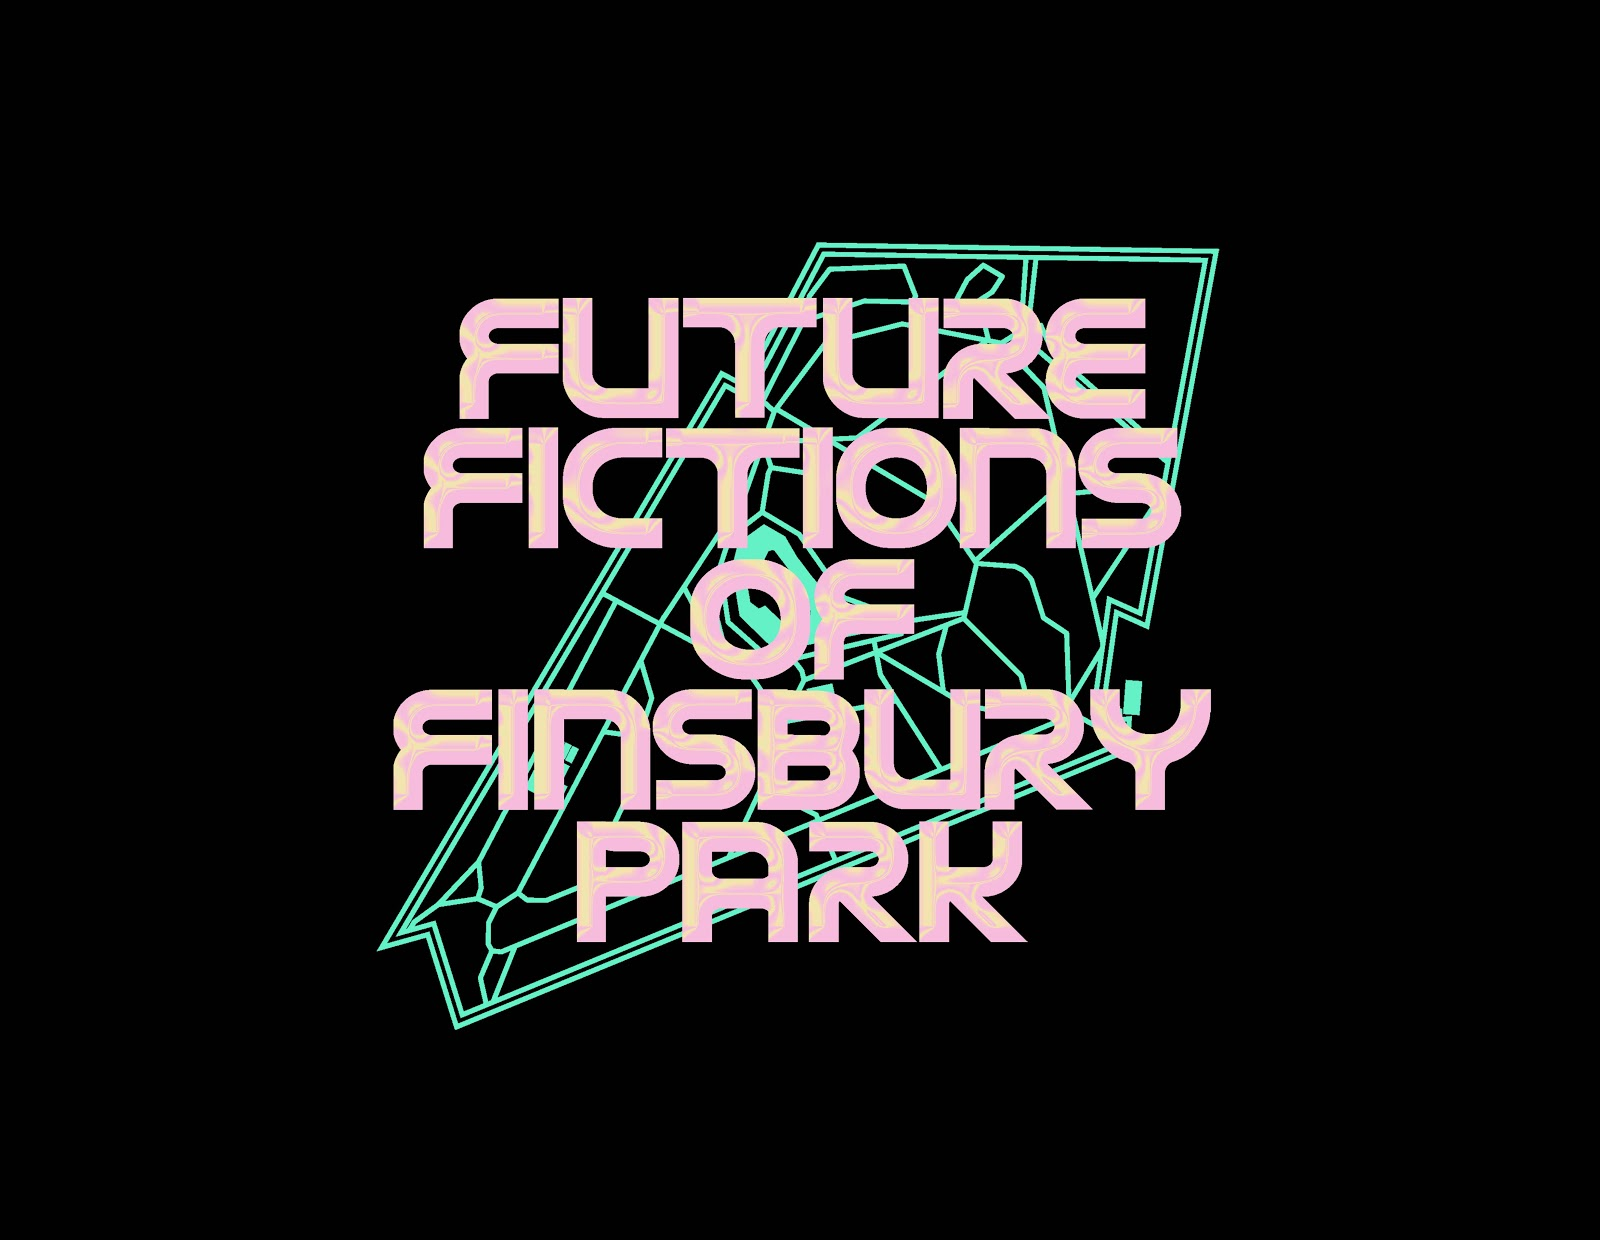 Future Fictions of Finsbury Park image by Studio Hyte